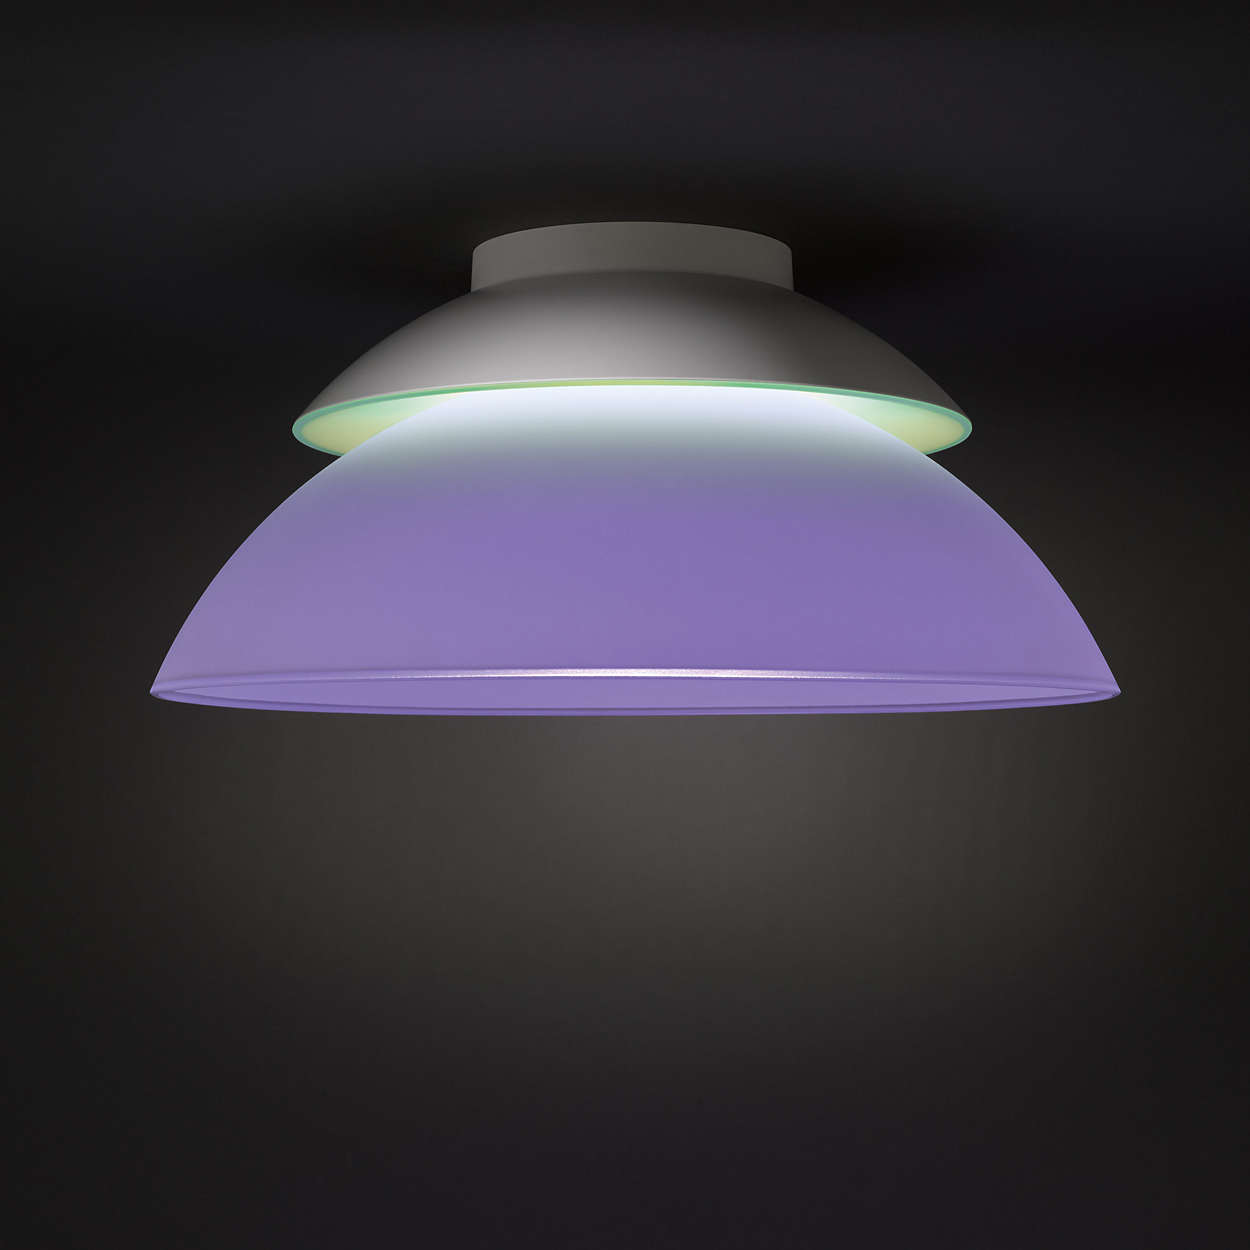 Hue White and color ambiance Beyond ceiling light 712013148 | Philips